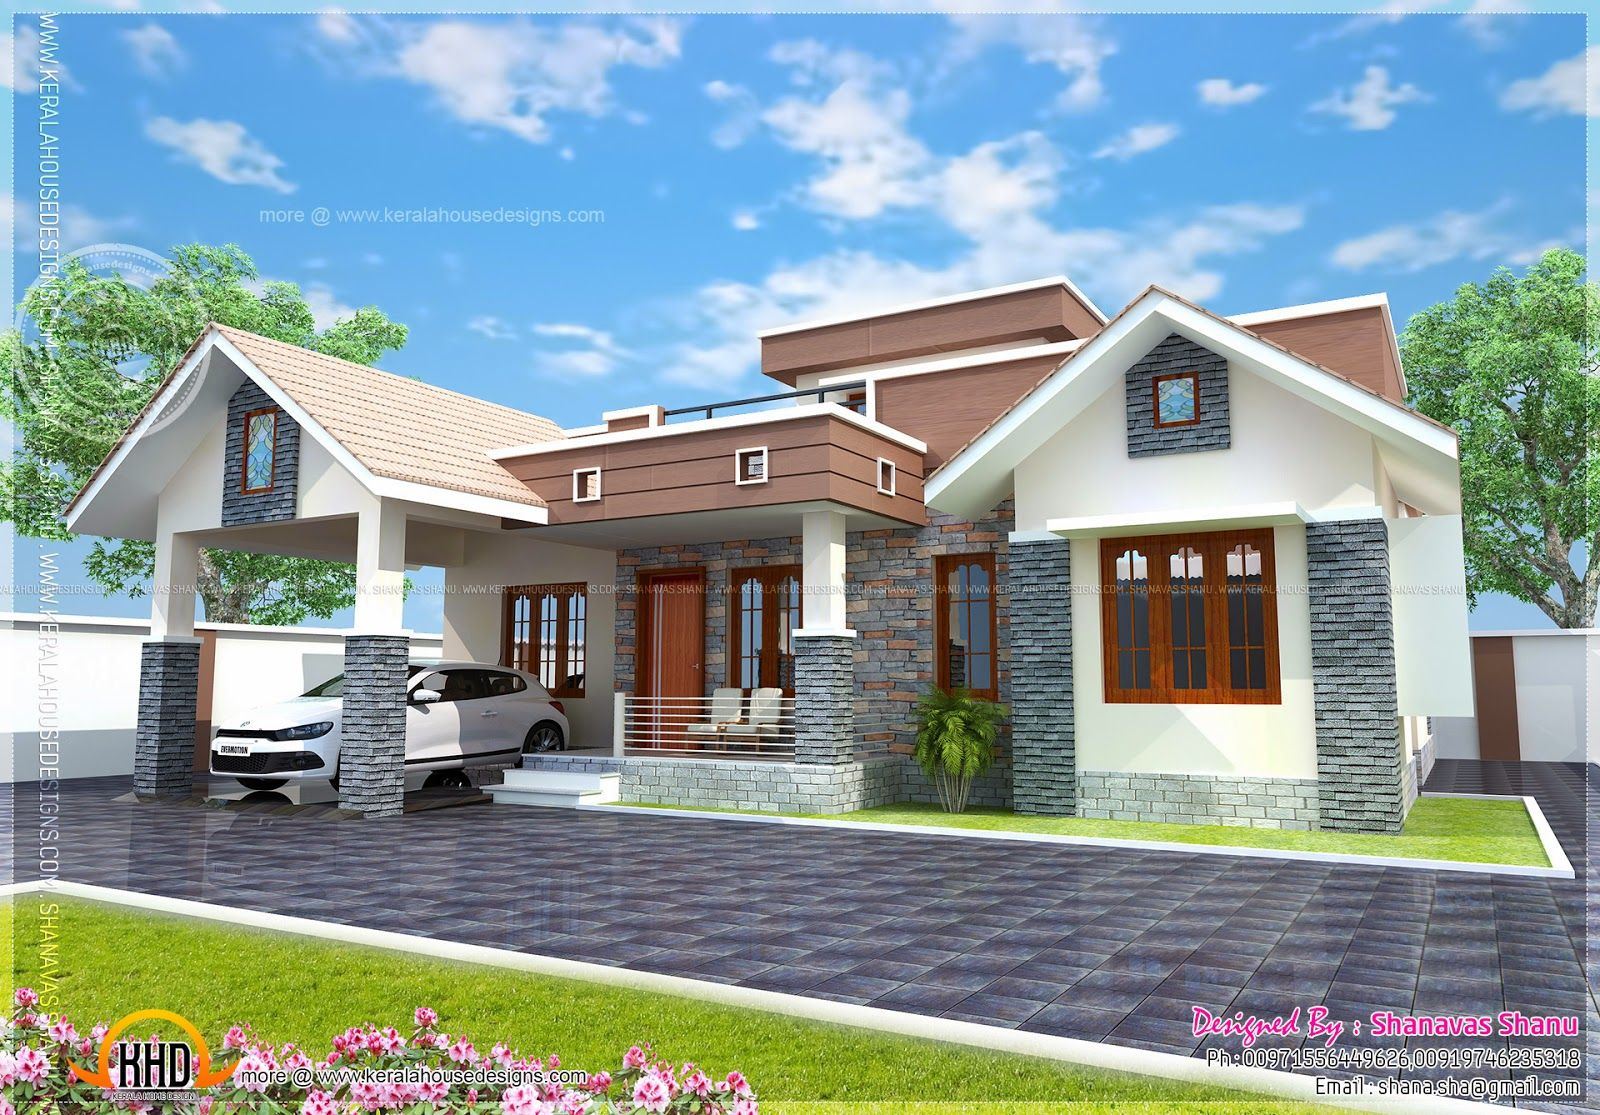 76d580bc574af4c8cd4da0af366b5c86 - 26+ 2Nd Floor Front Design Of House In Small Budget PNG